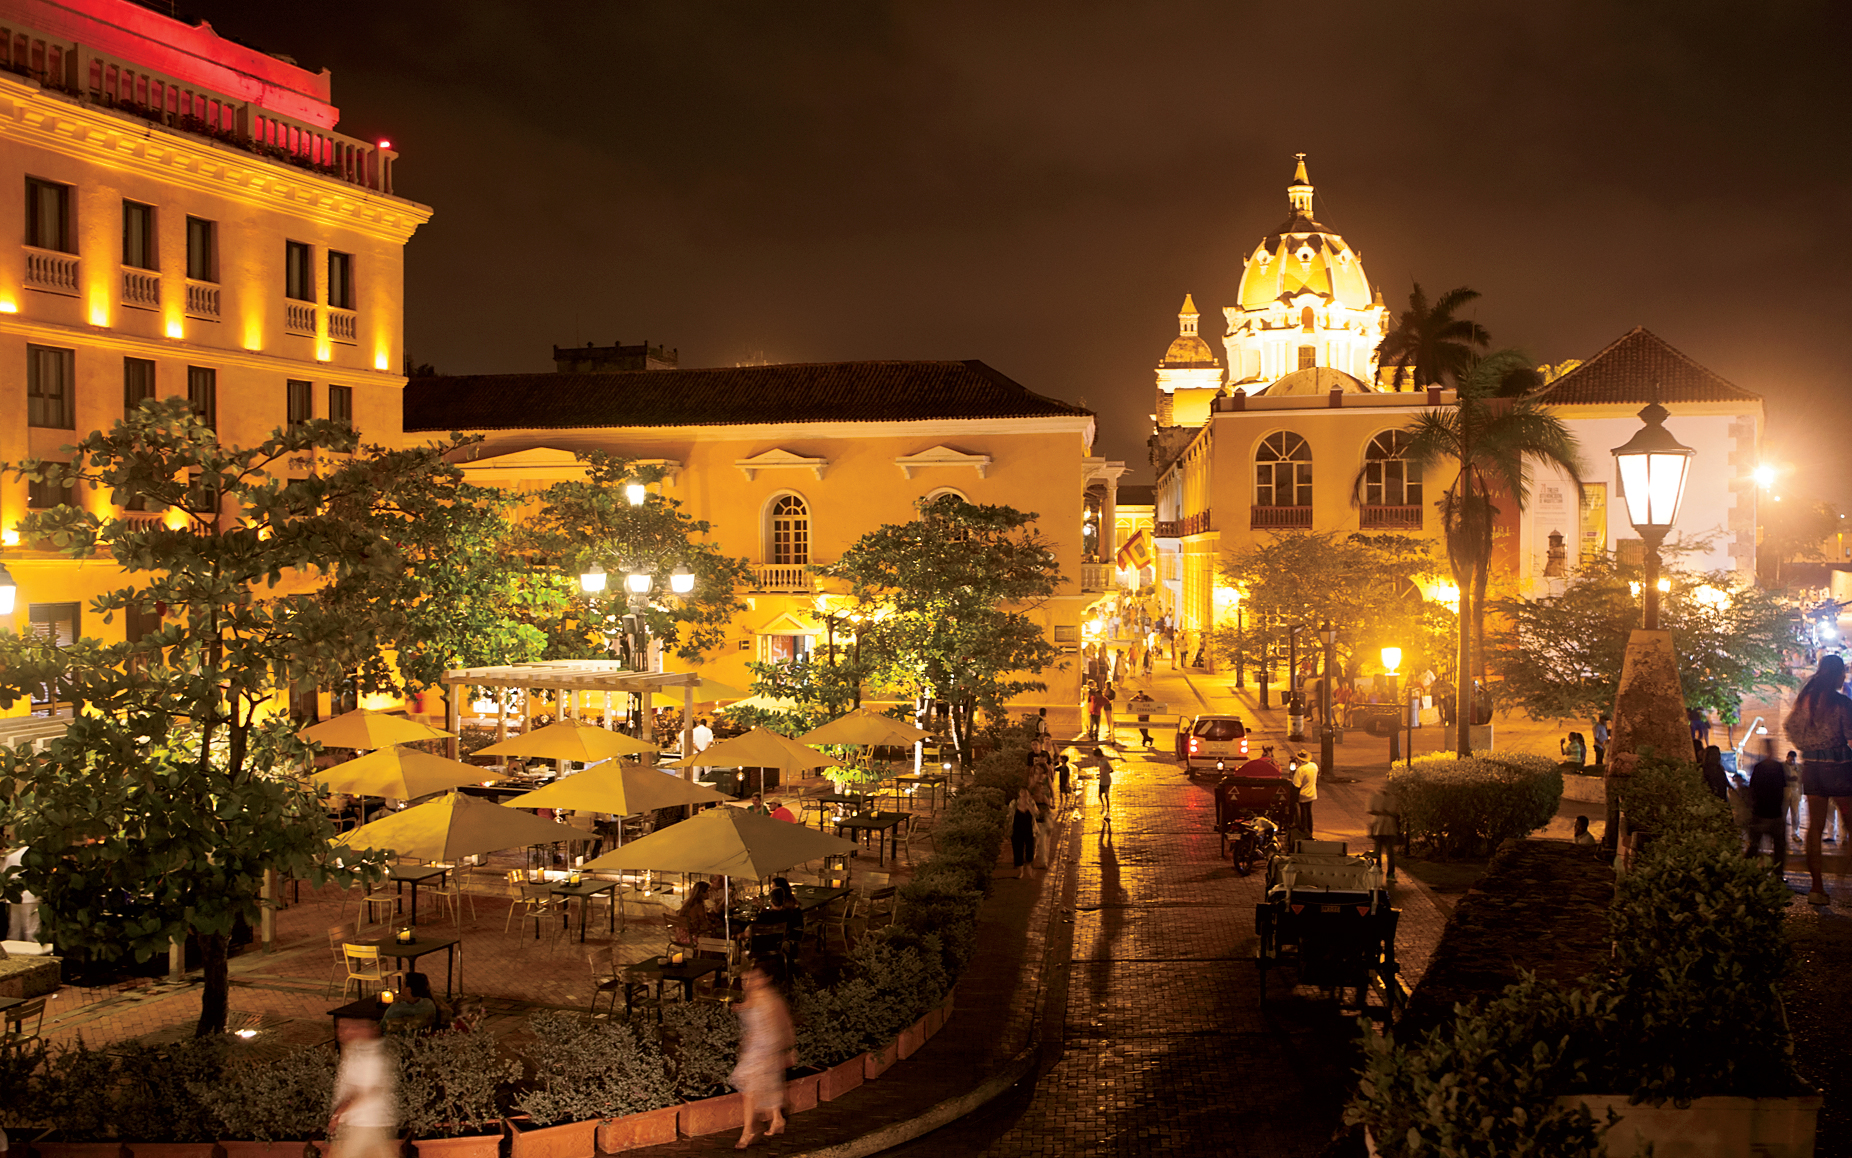 201501-a-definitive-guide-to-cartagena